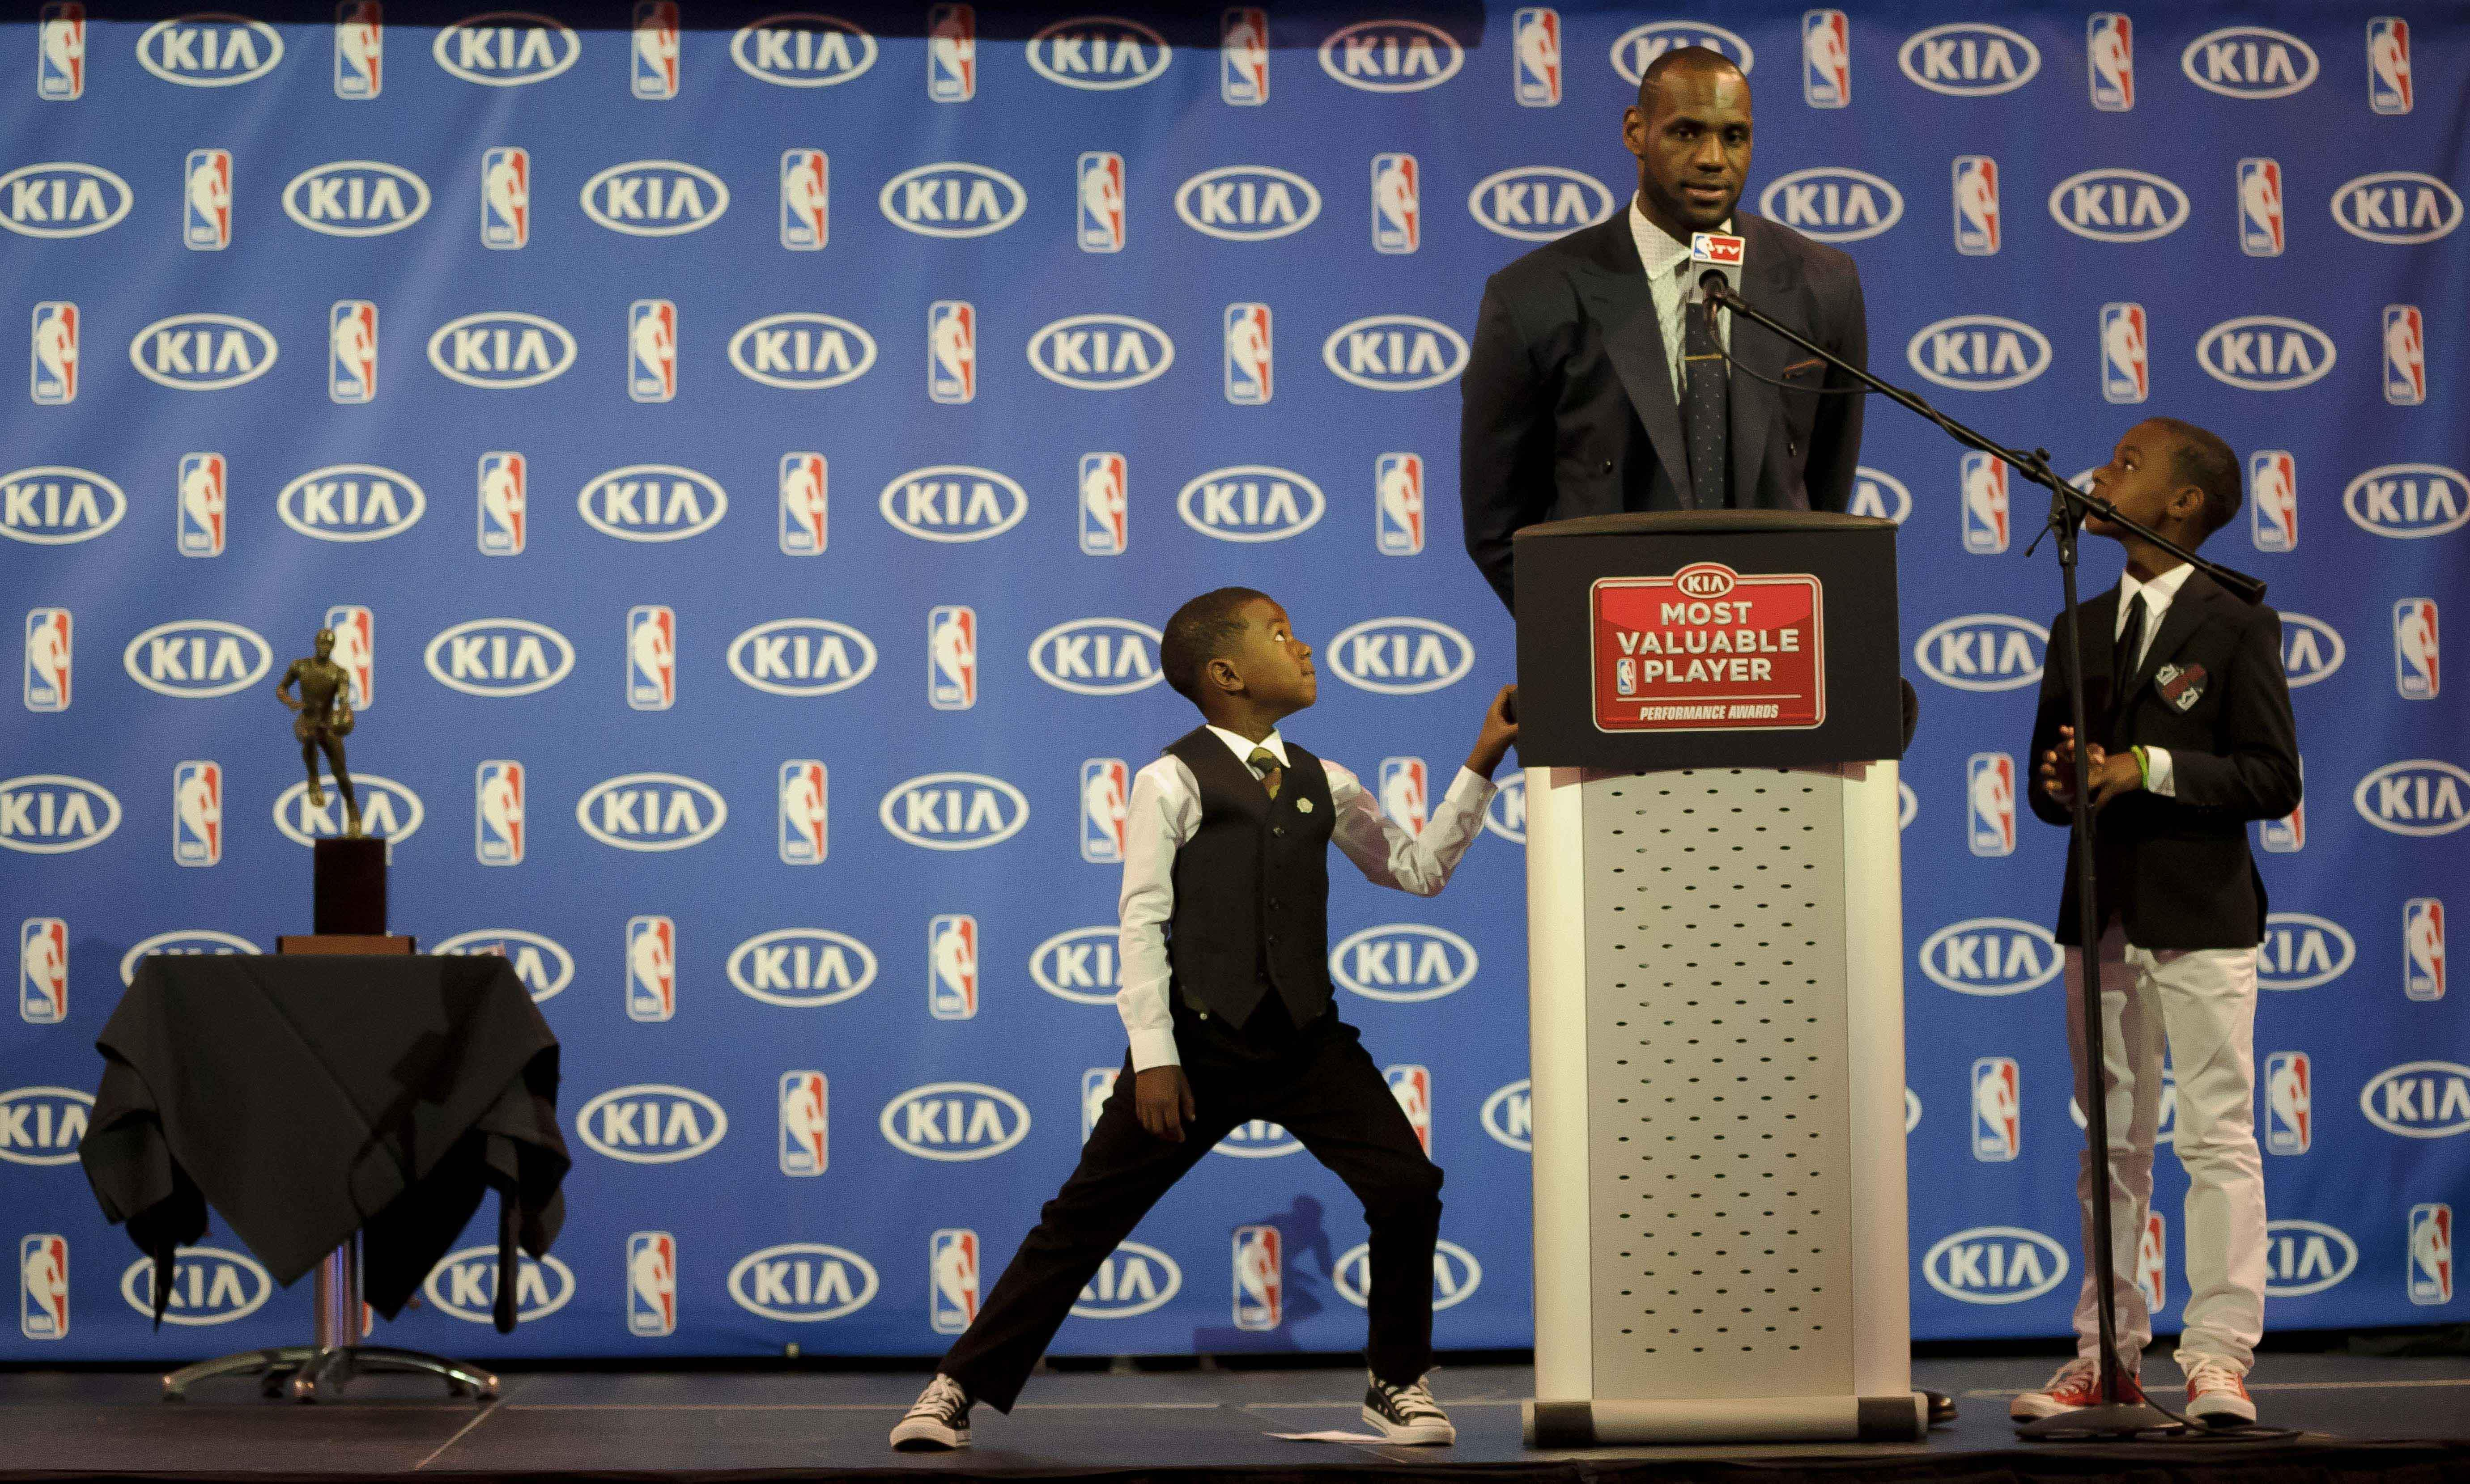 LeBron James and his sons through the years